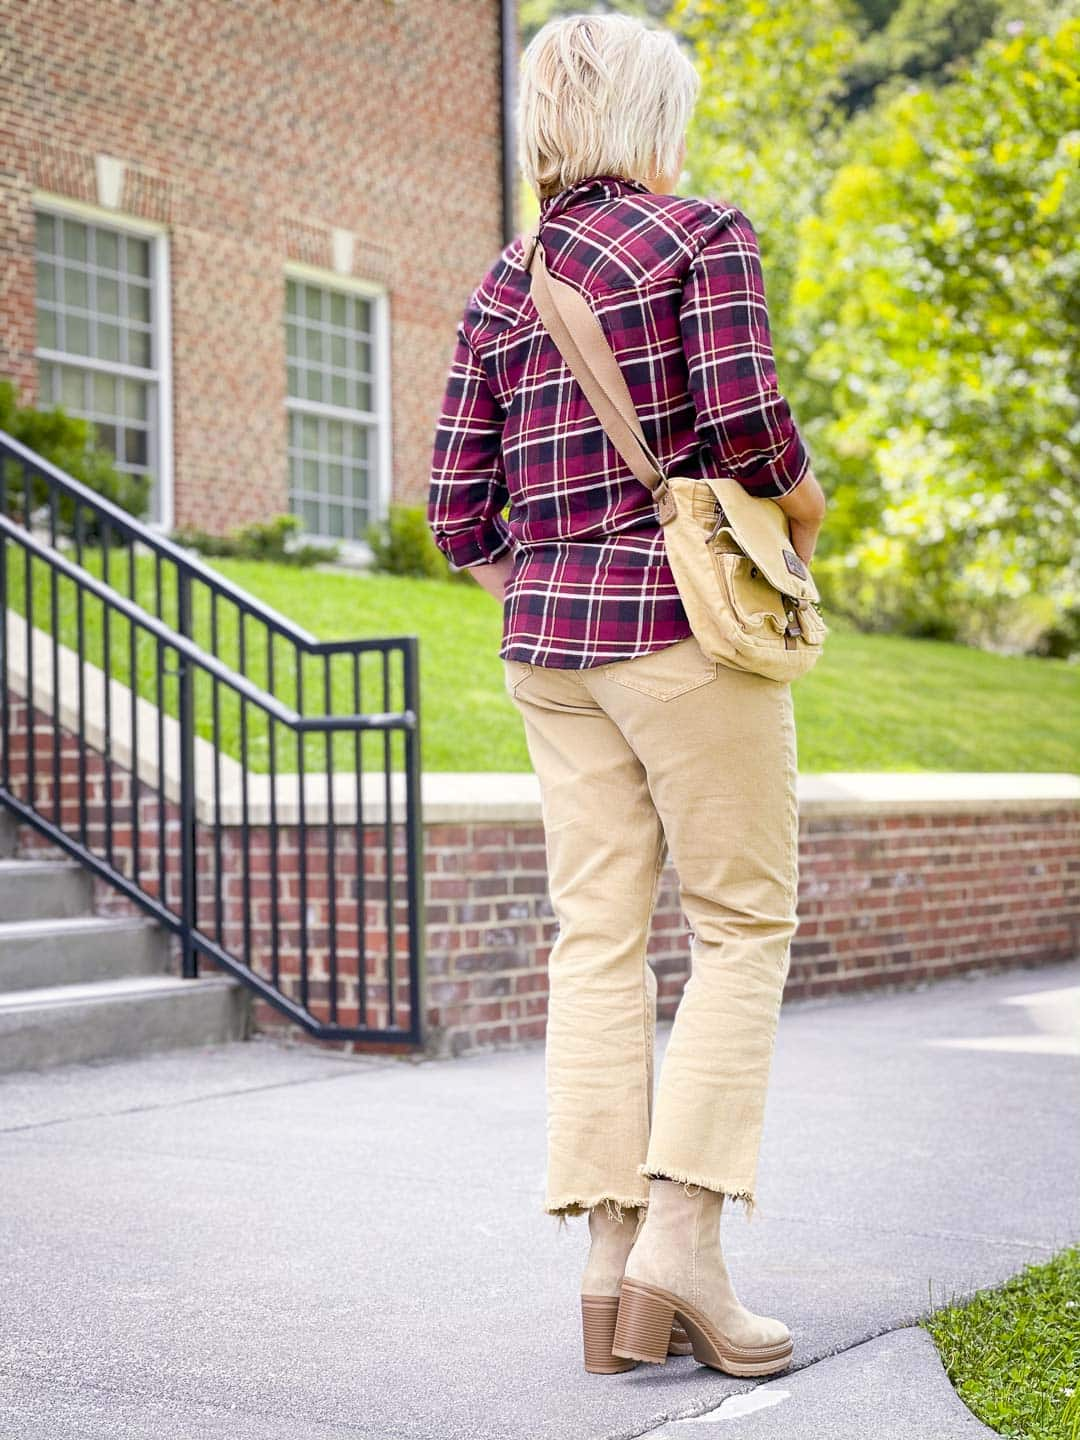 Over 40 Fashion Blogger, Tania Stephens is showing the back of a plaid flannel shirt with crop jeans to show how to get the most out of your wardrobe